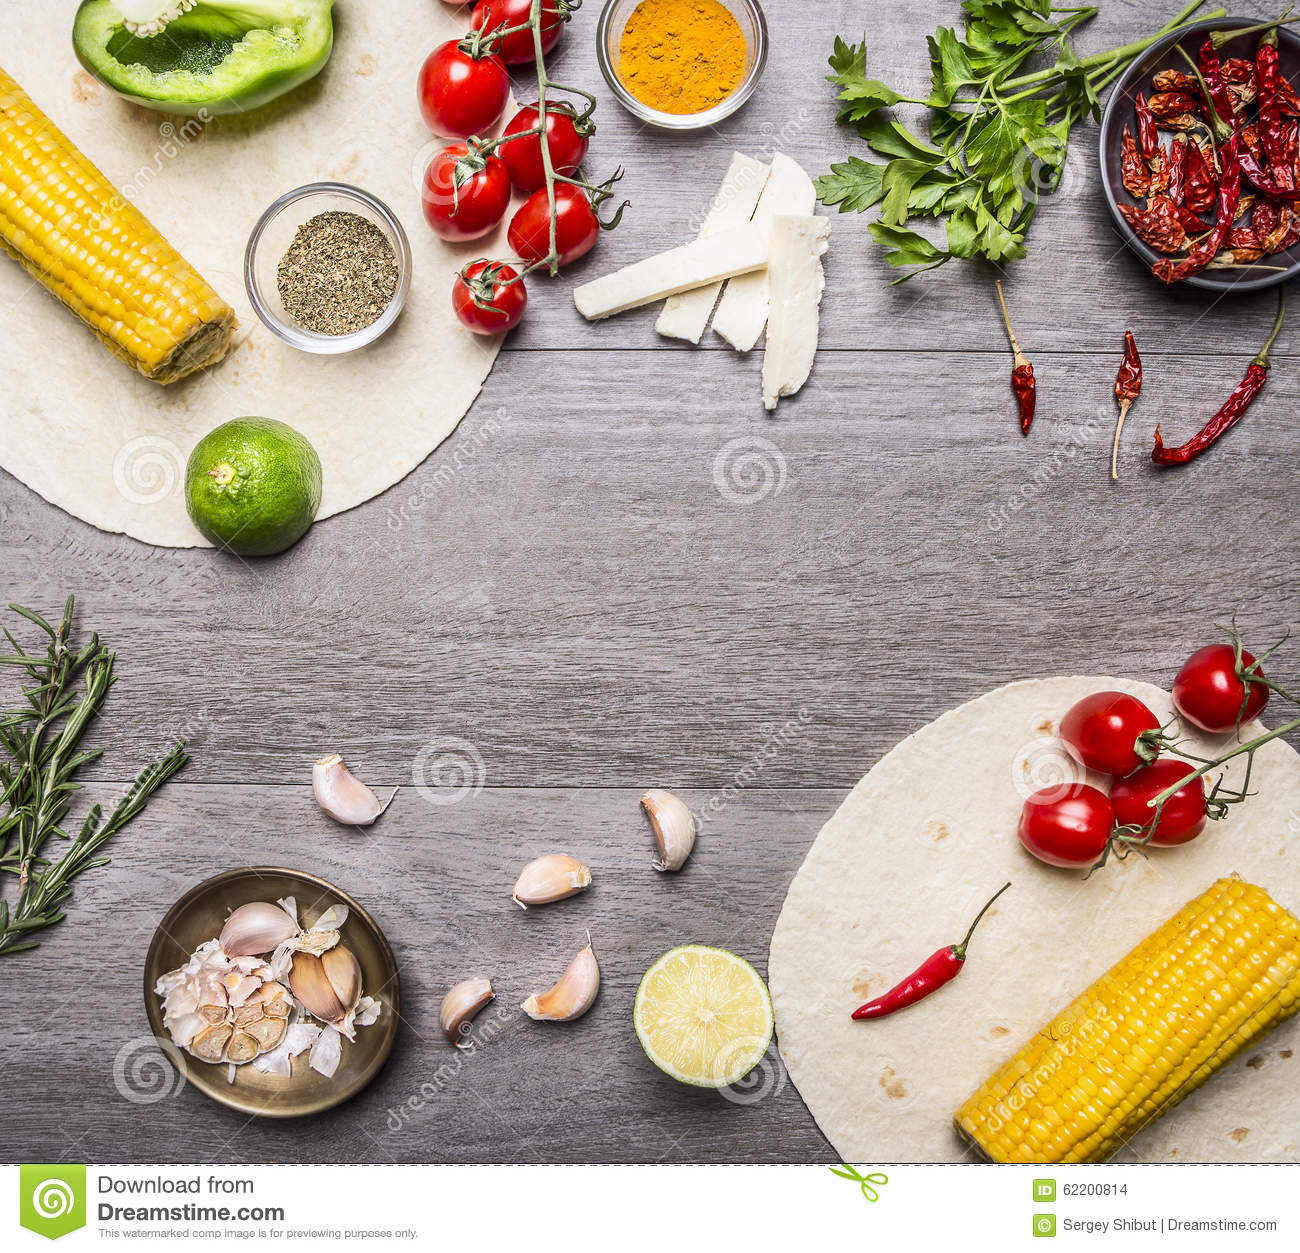 Ingredients for cooking vegetarian burritos lined frame, with tomatoes, pepper, spicy chili, corn, cheese and garlic border with s